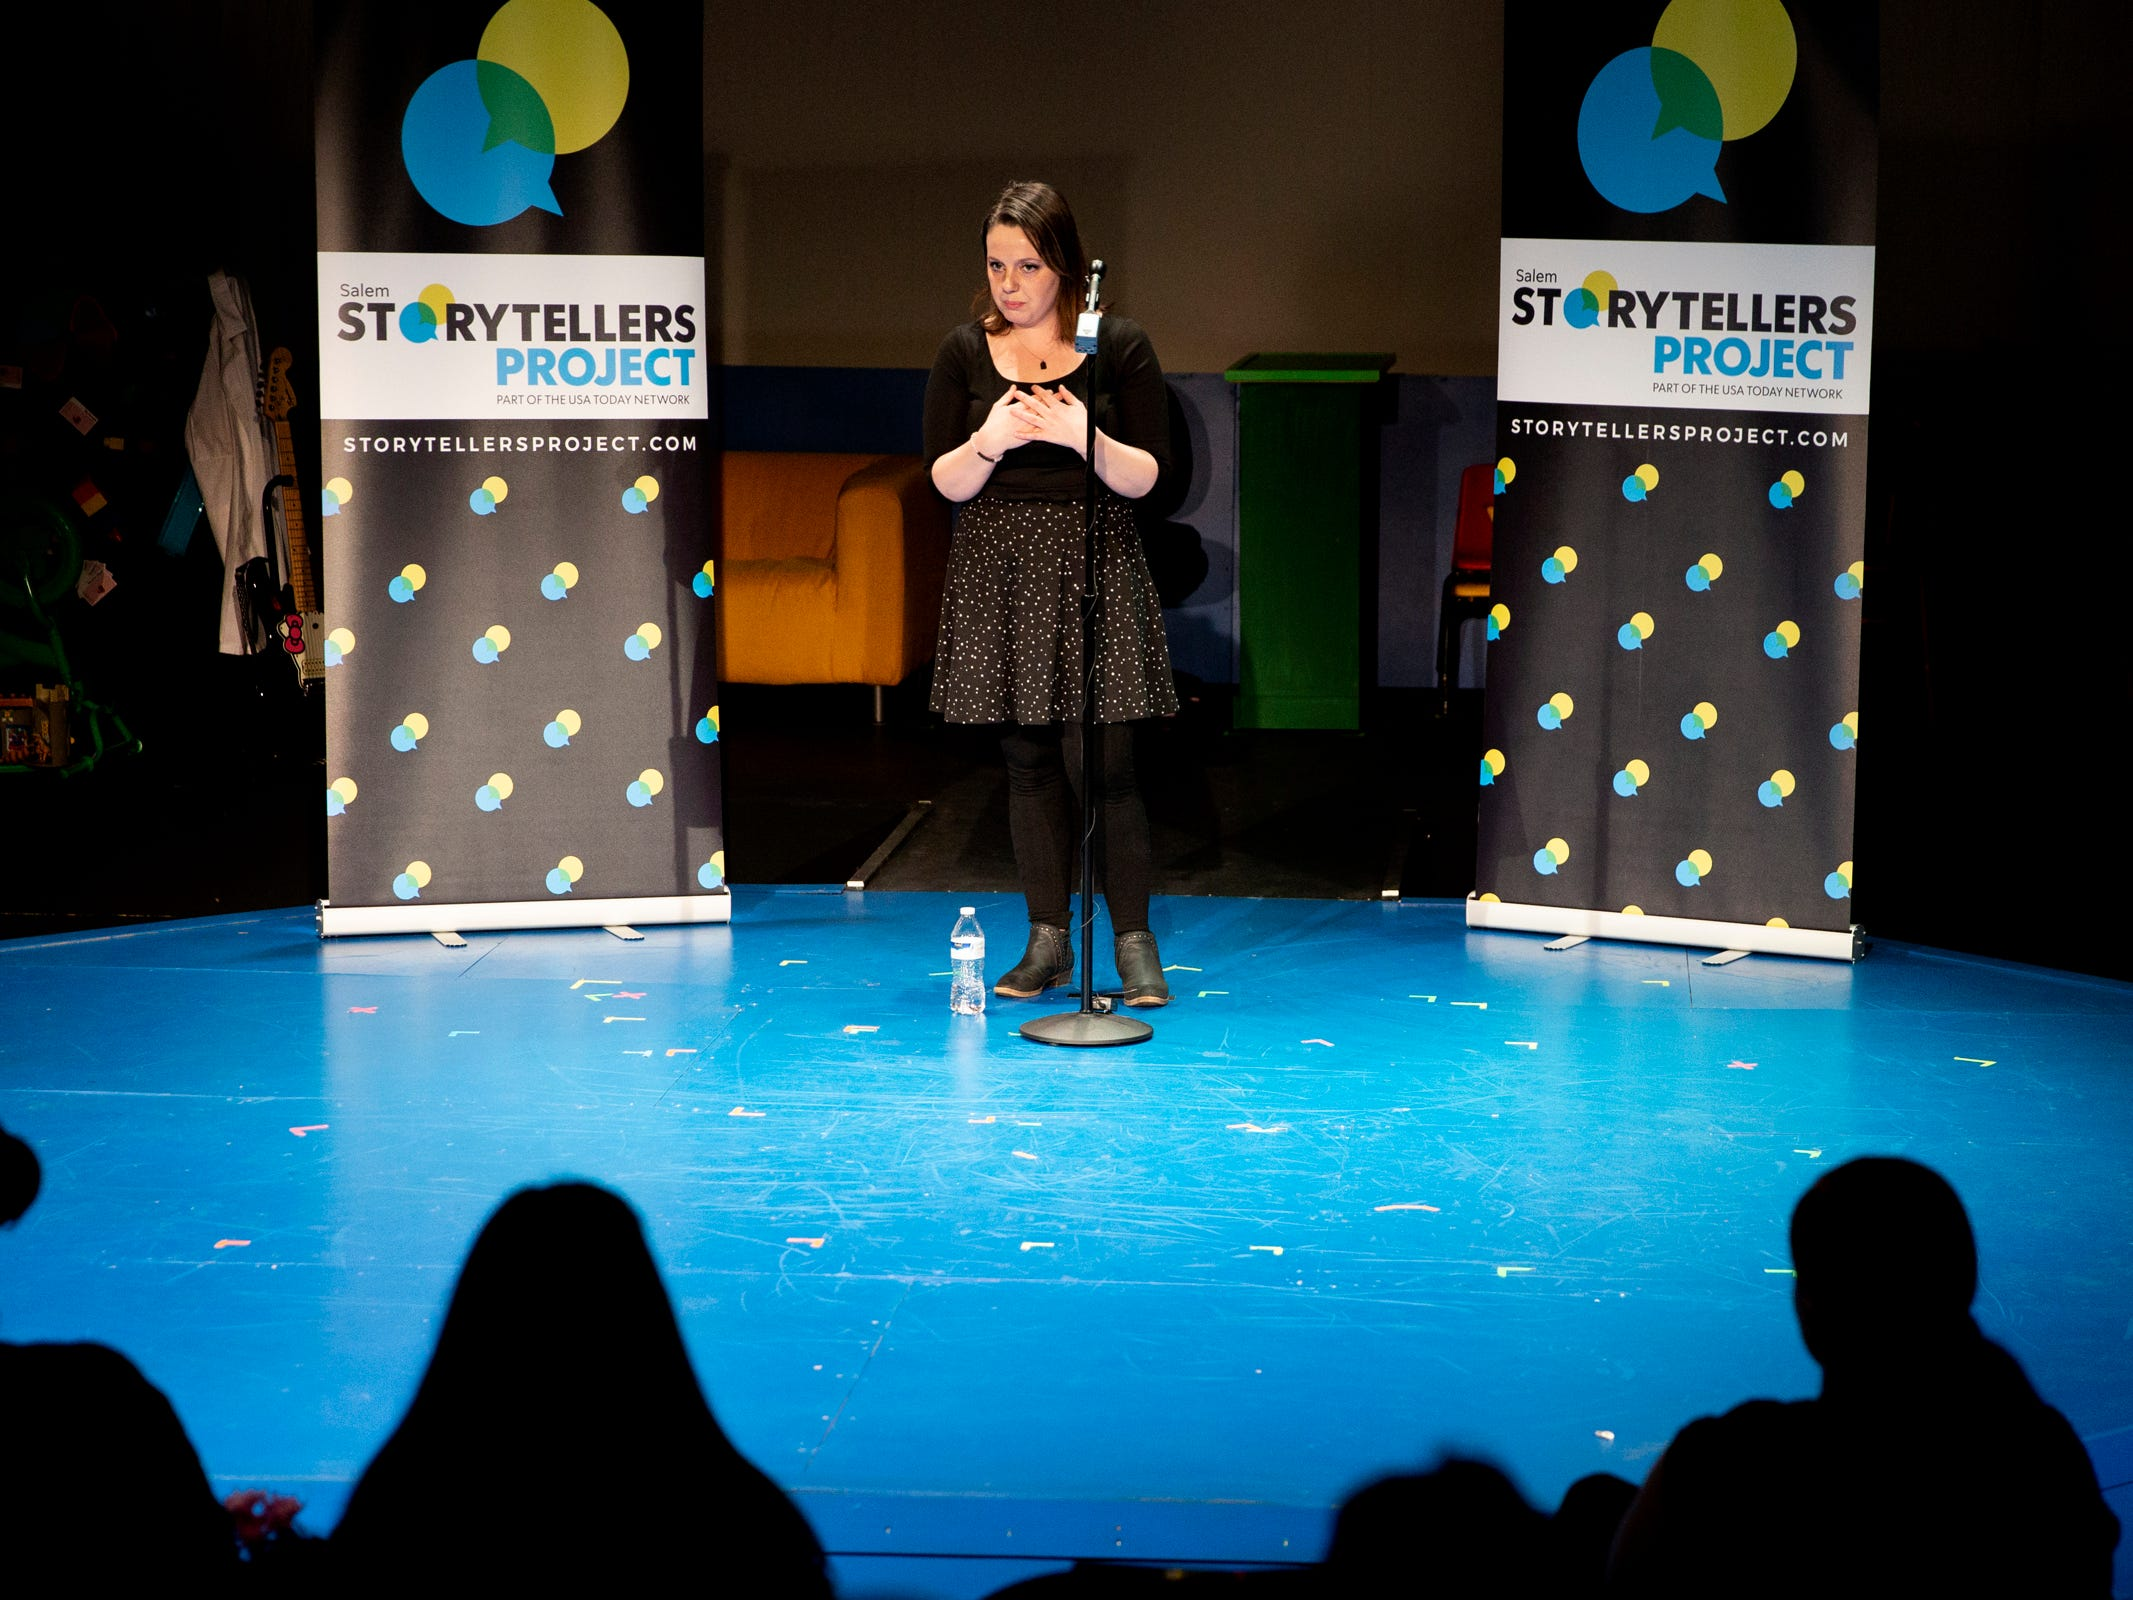 Bobbie Mann speaks as Salem Storytellers Project presents Romance, or Not at the Pentacle Theatre in Salem on Tuesday, Feb. 5, 2019.